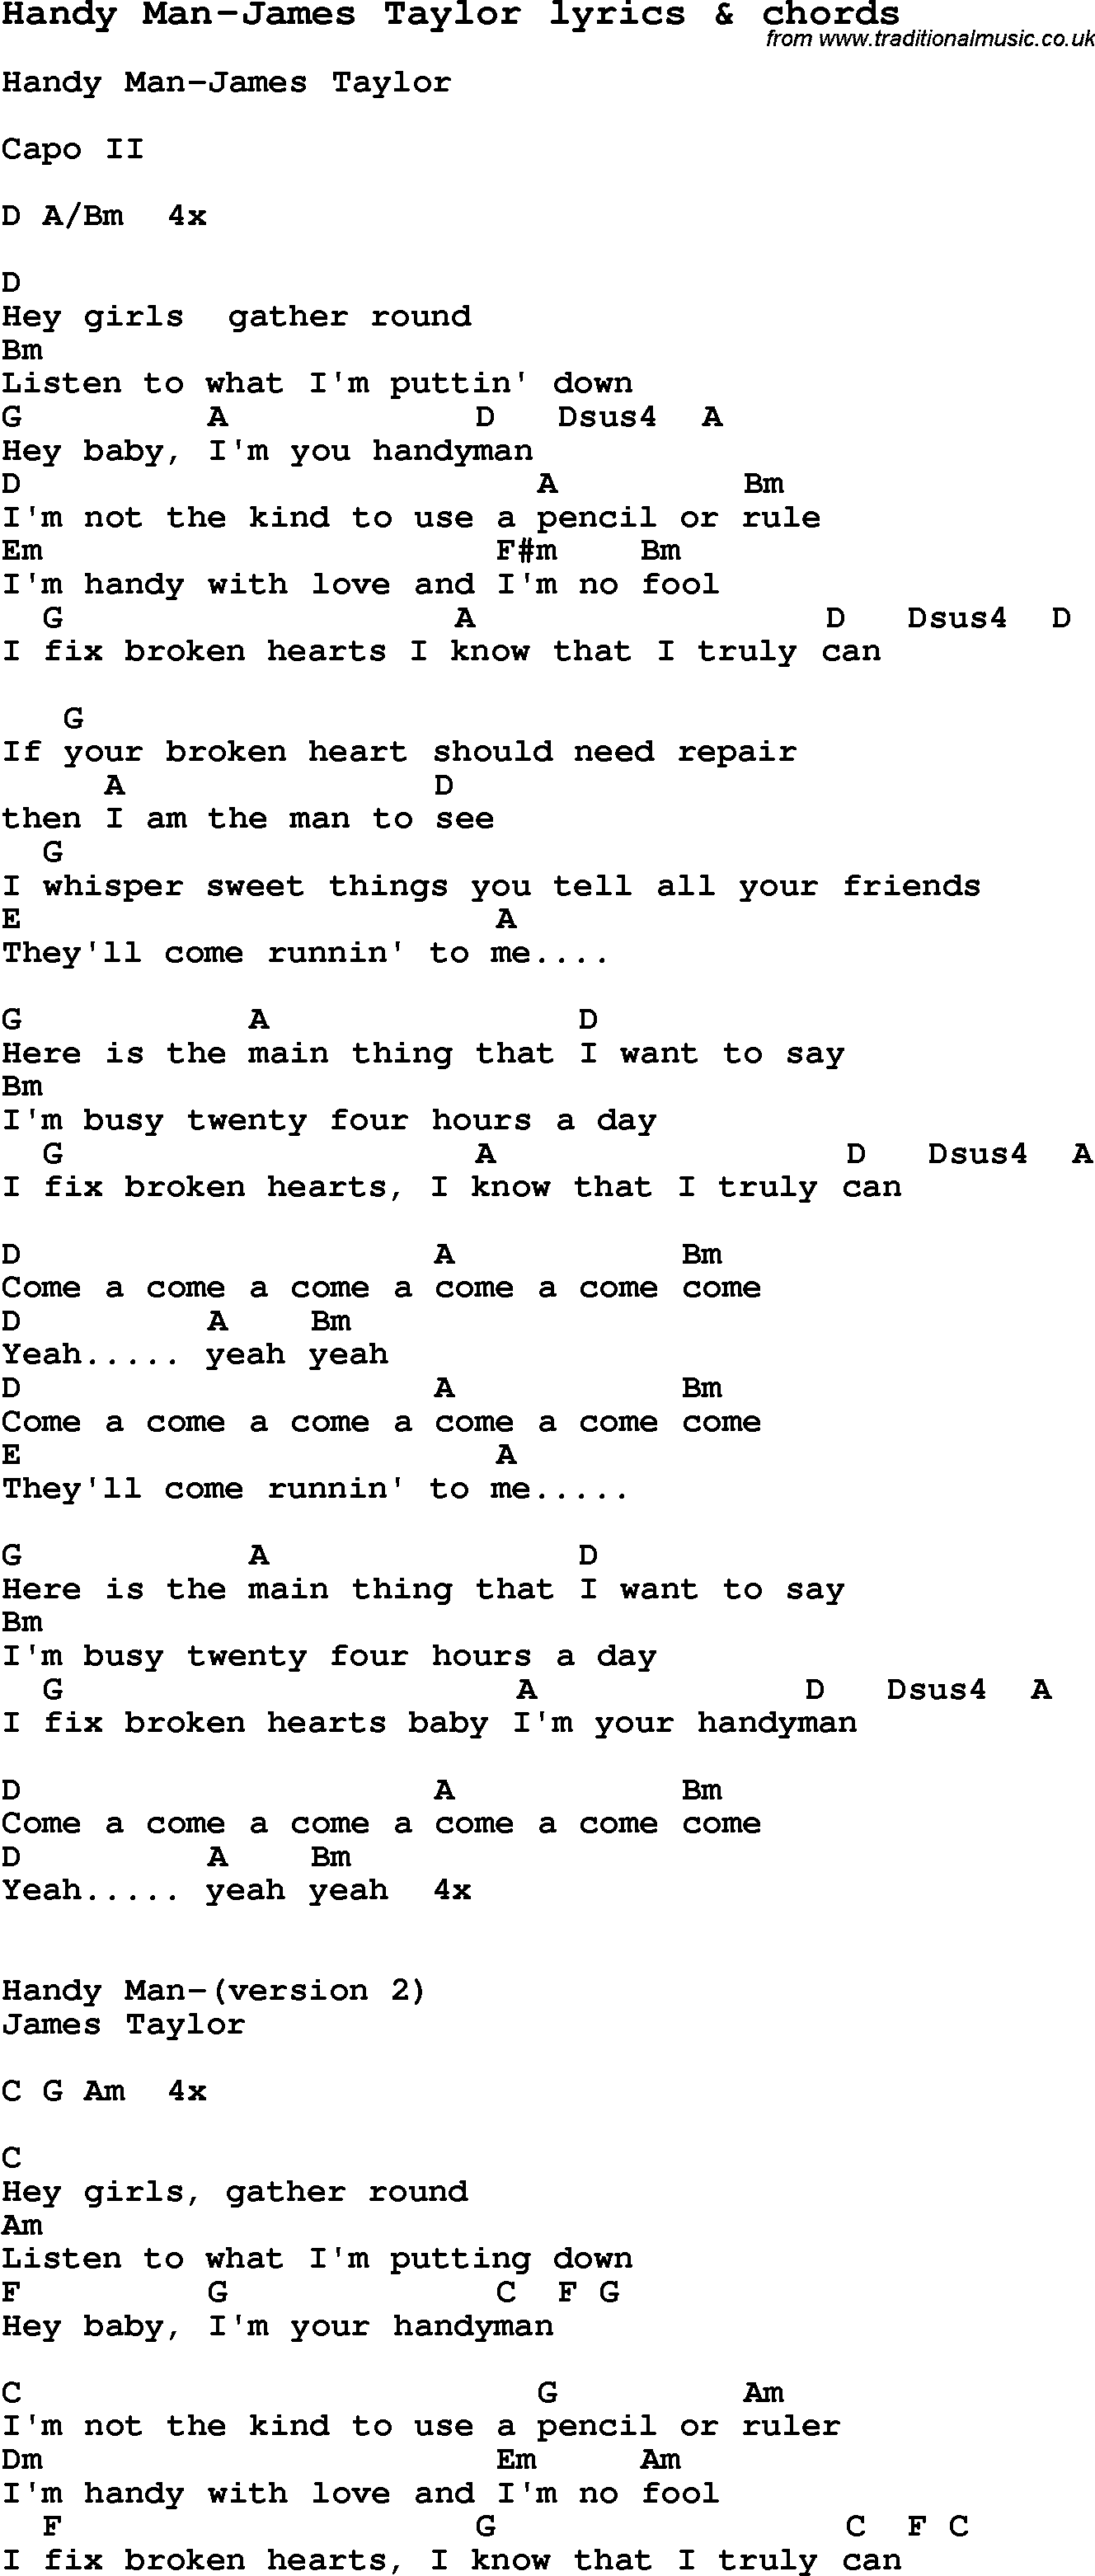 Love Song Lyrics For Handy Man James Taylor With Chords For Ukulele